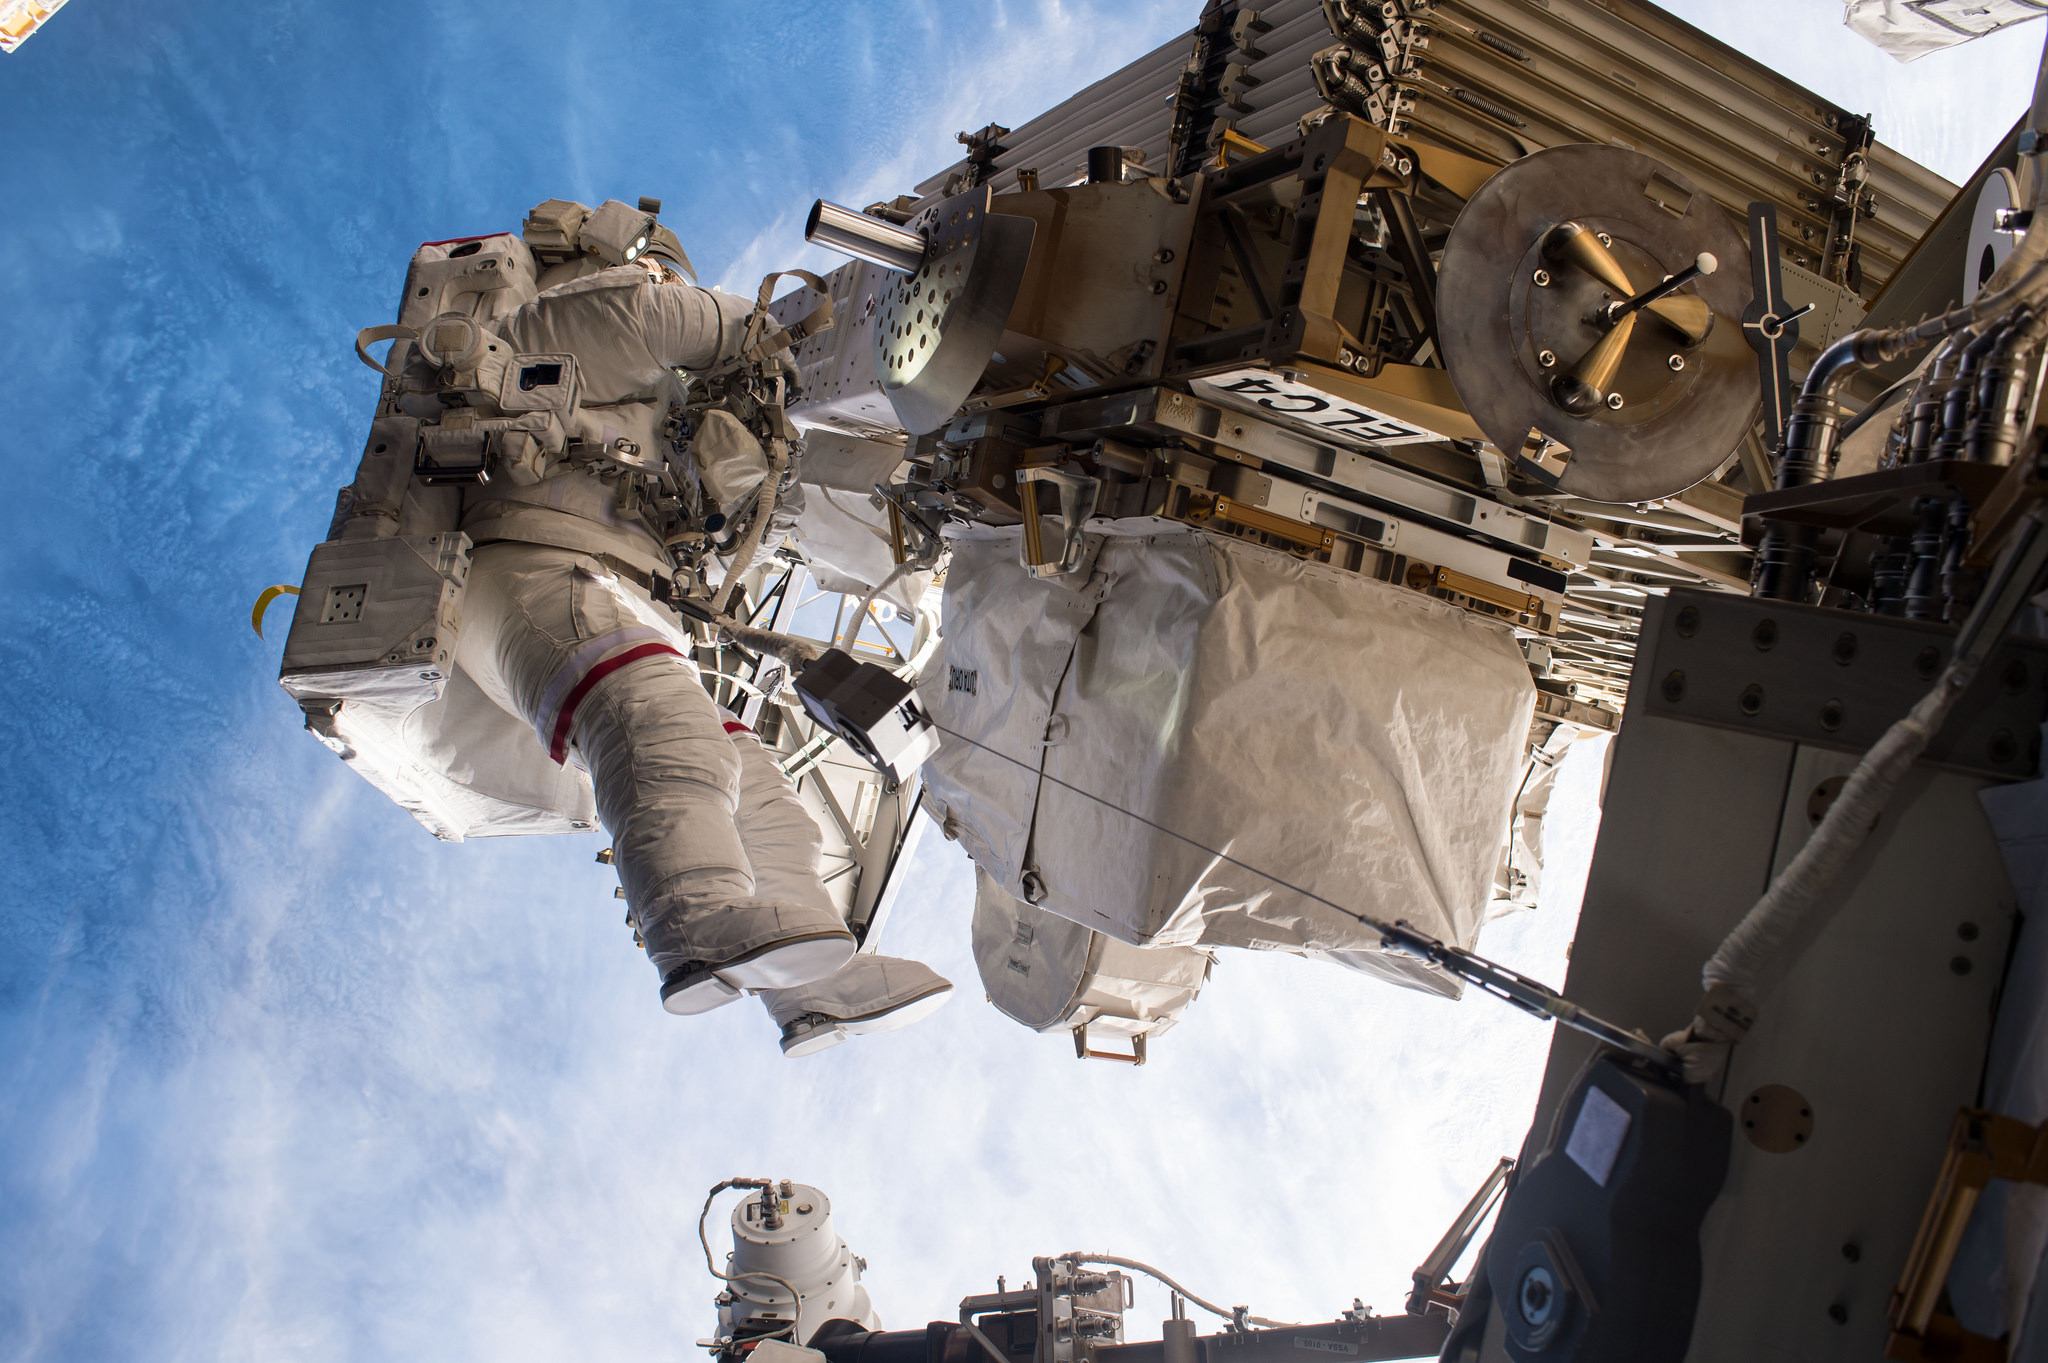 Whitson works outside the space station during U.S. EVA-42. Credit: NASA